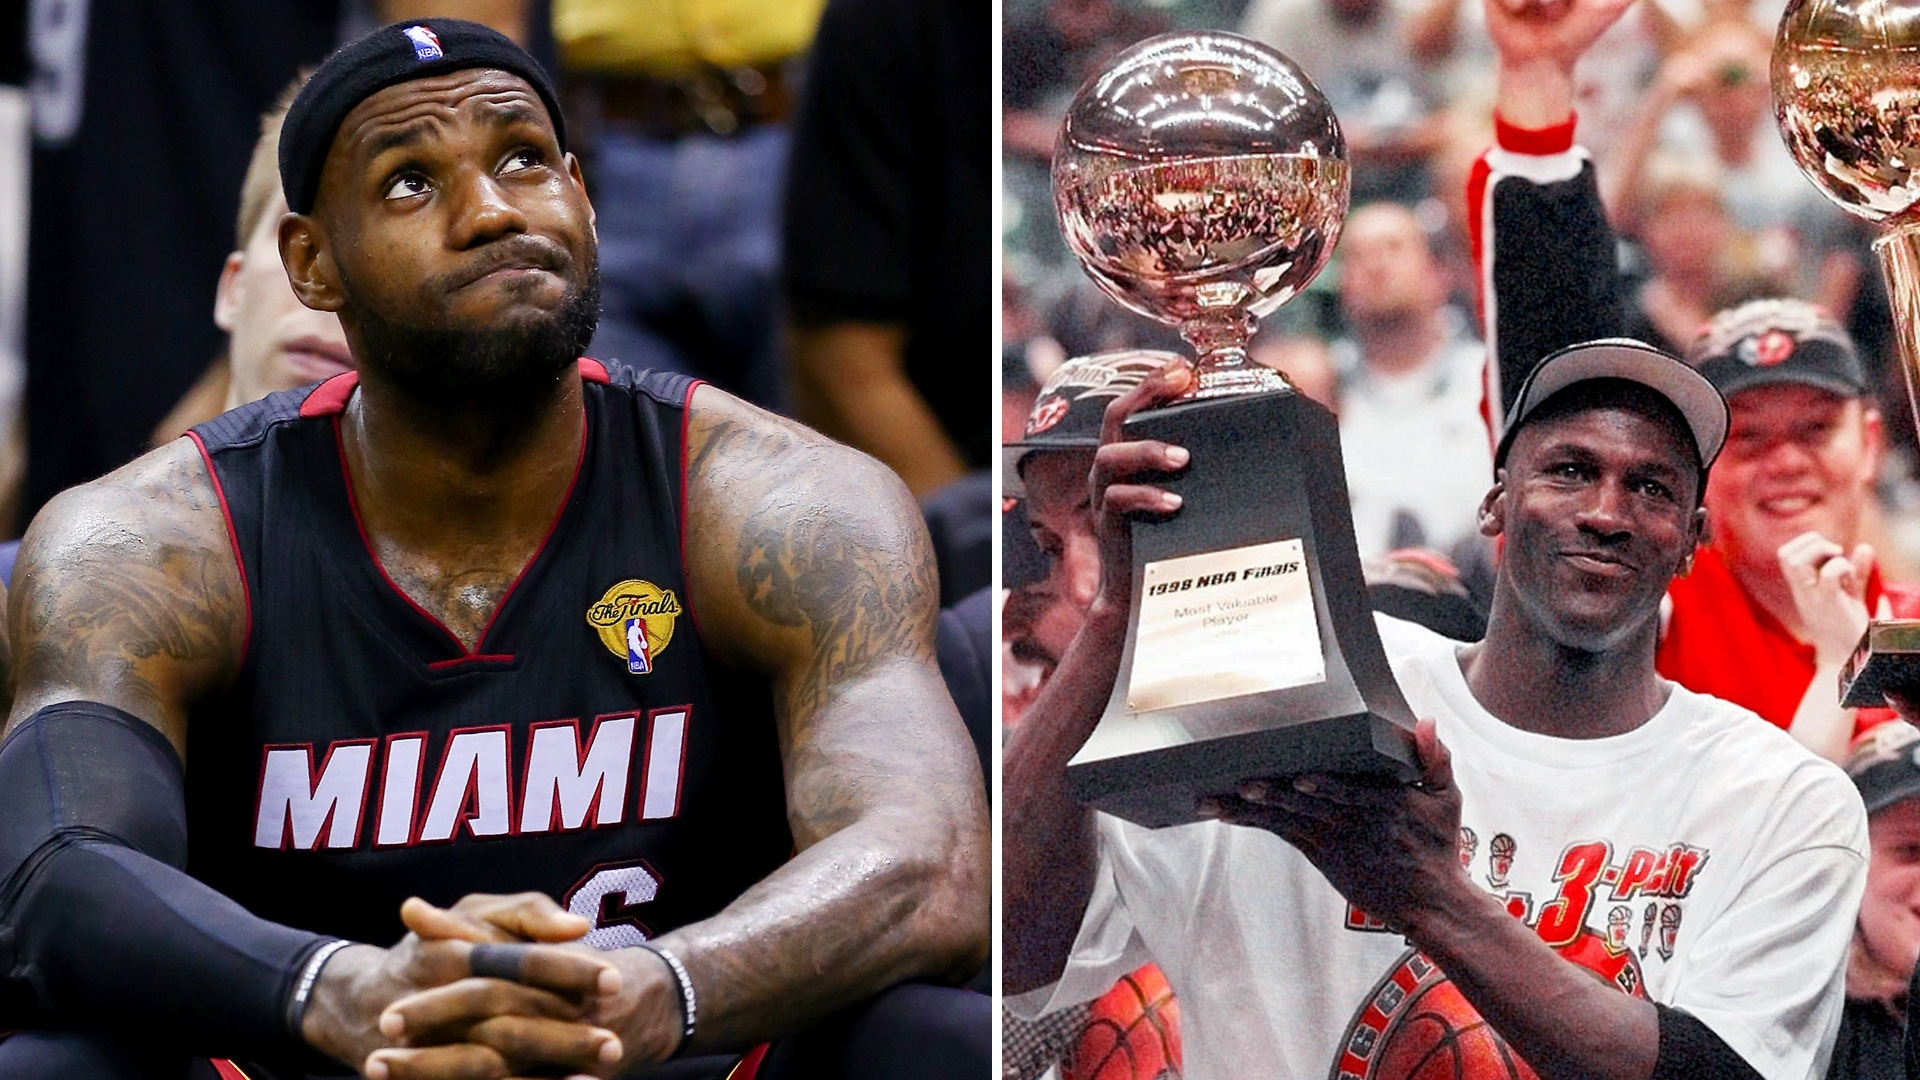 Di did lebron james become famous - Ranking Every Nba Finals Rematch From Bill Russell To Lebron James